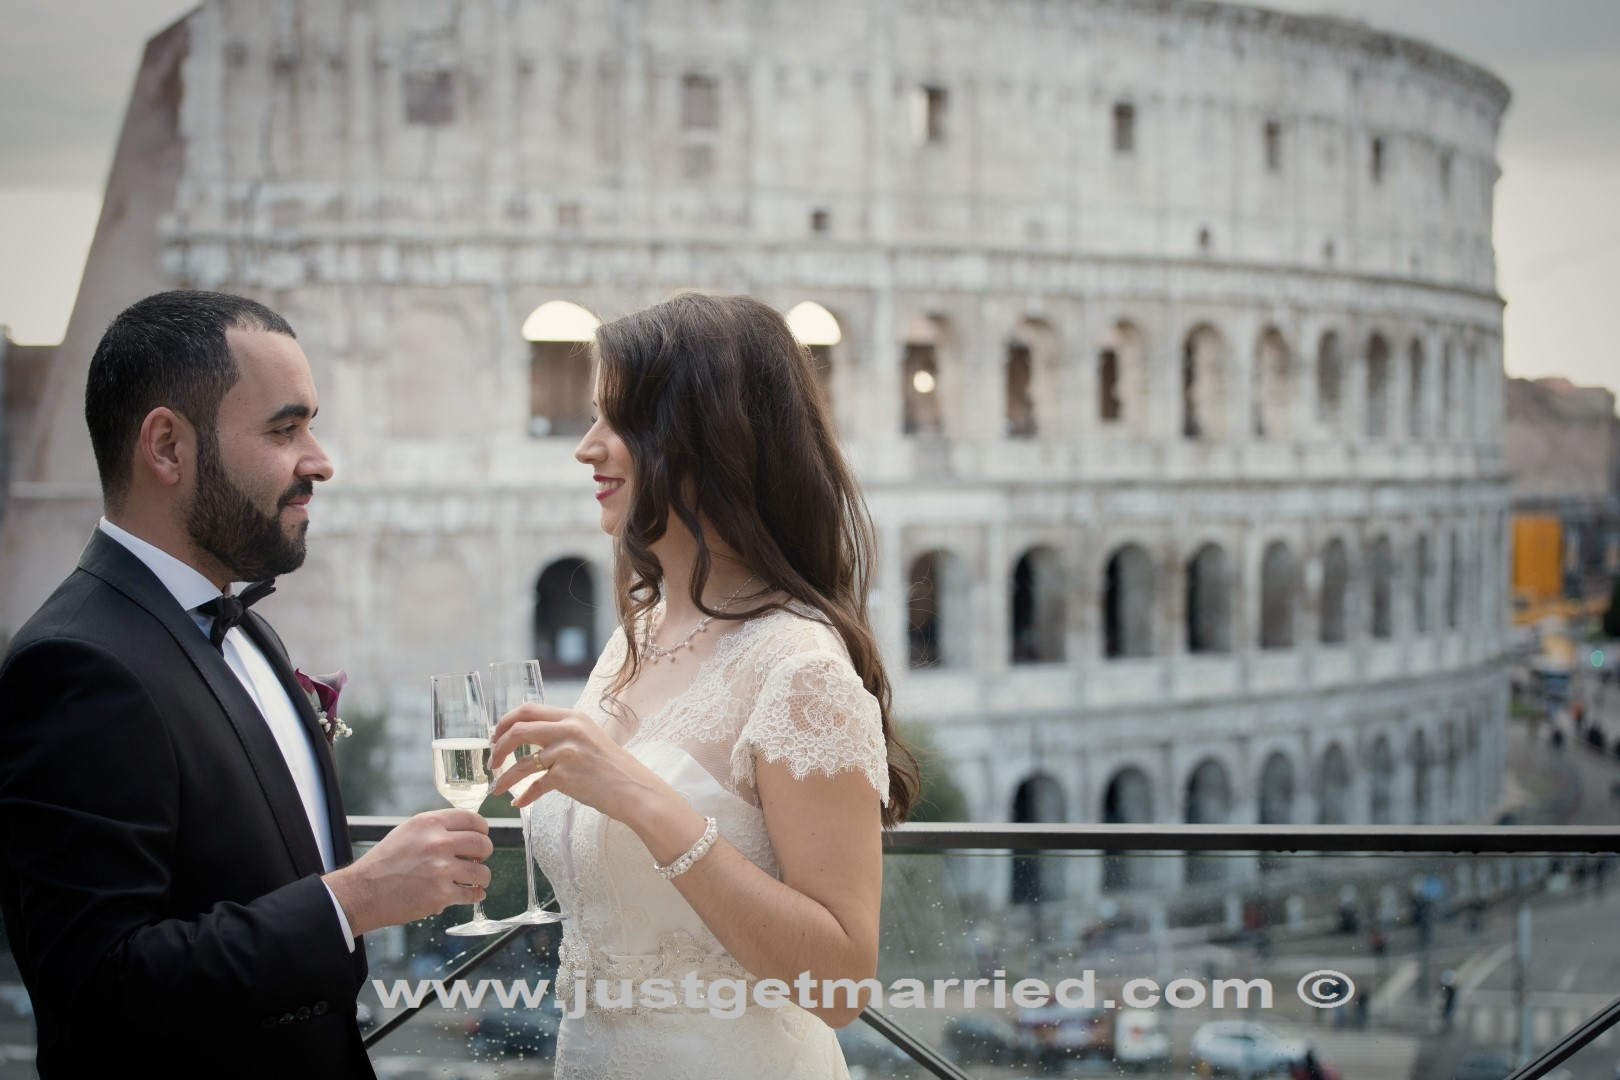 palazzo manfredi wedding outdoor venue for ceremonies and events